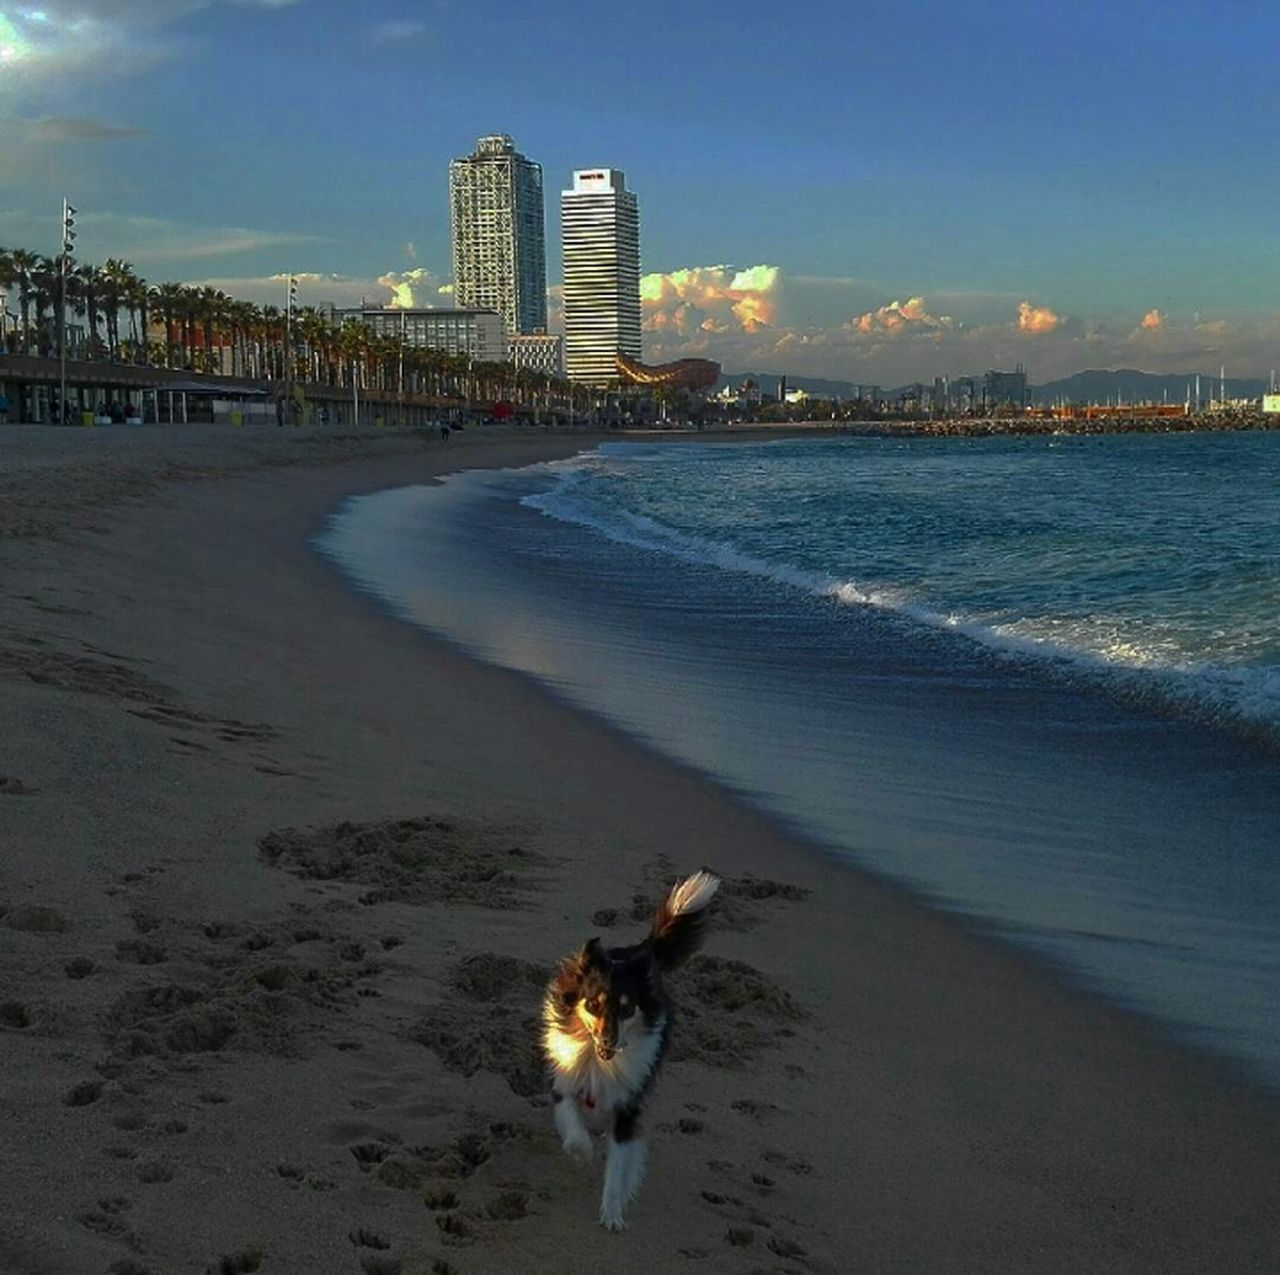 beach, architecture, sand, building exterior, sea, skyscraper, built structure, city, sky, outdoors, real people, water, one animal, cloud - sky, nature, travel destinations, sunset, animal themes, cityscape, dog, urban skyline, domestic animals, pets, vacations, mammal, day